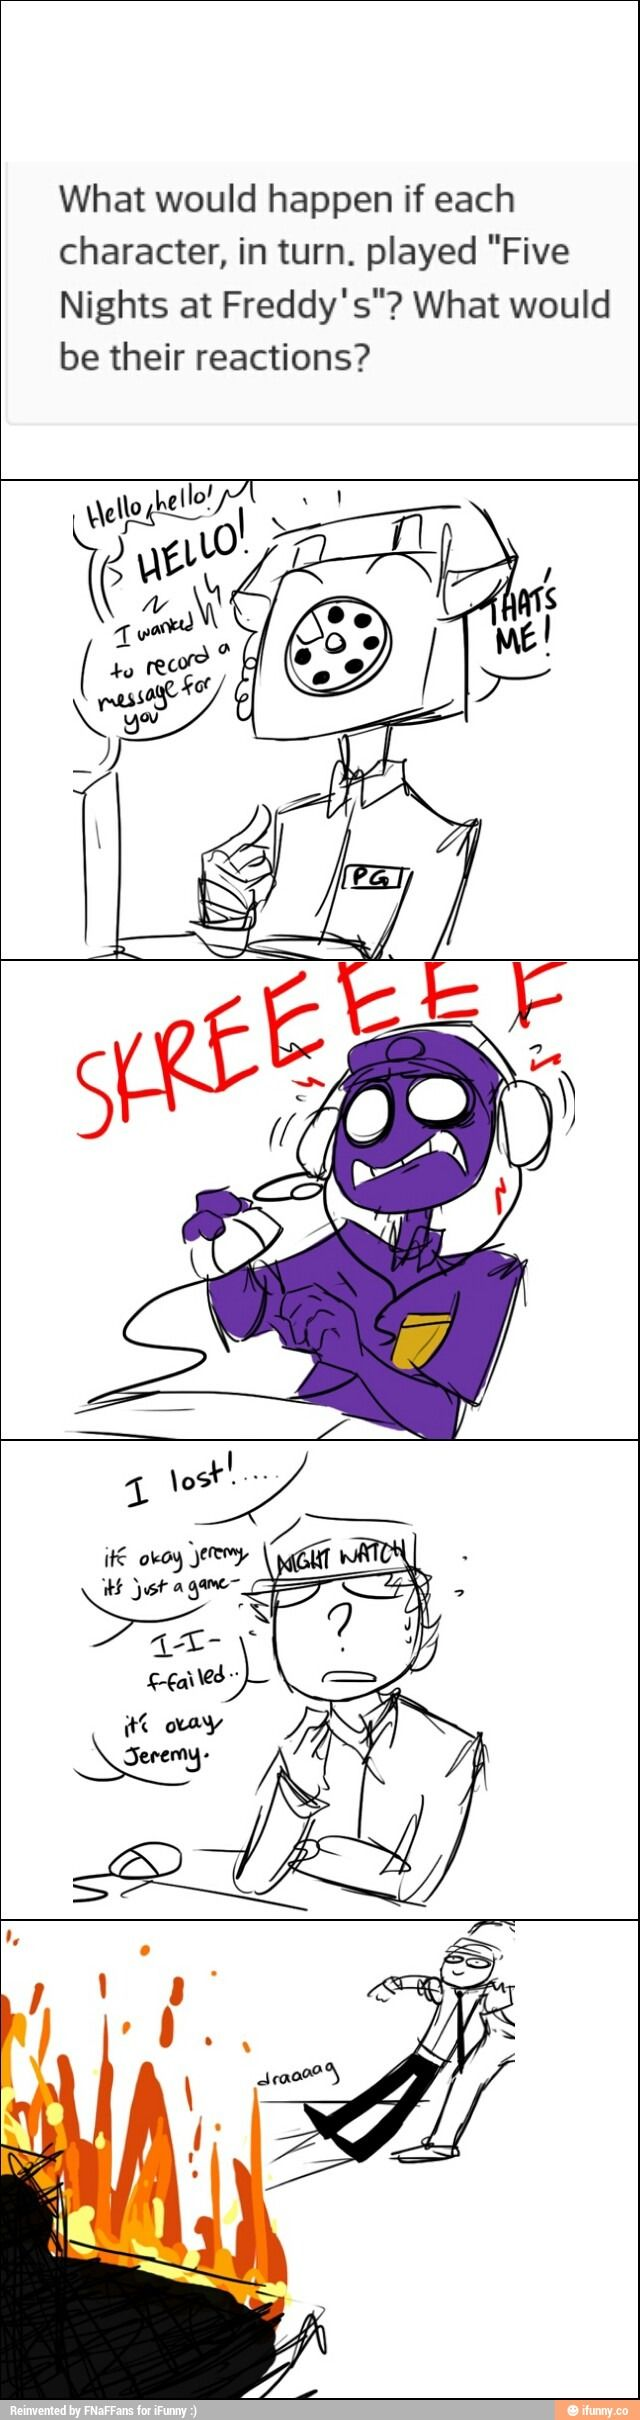 Five Nights at Freddy's Reaction